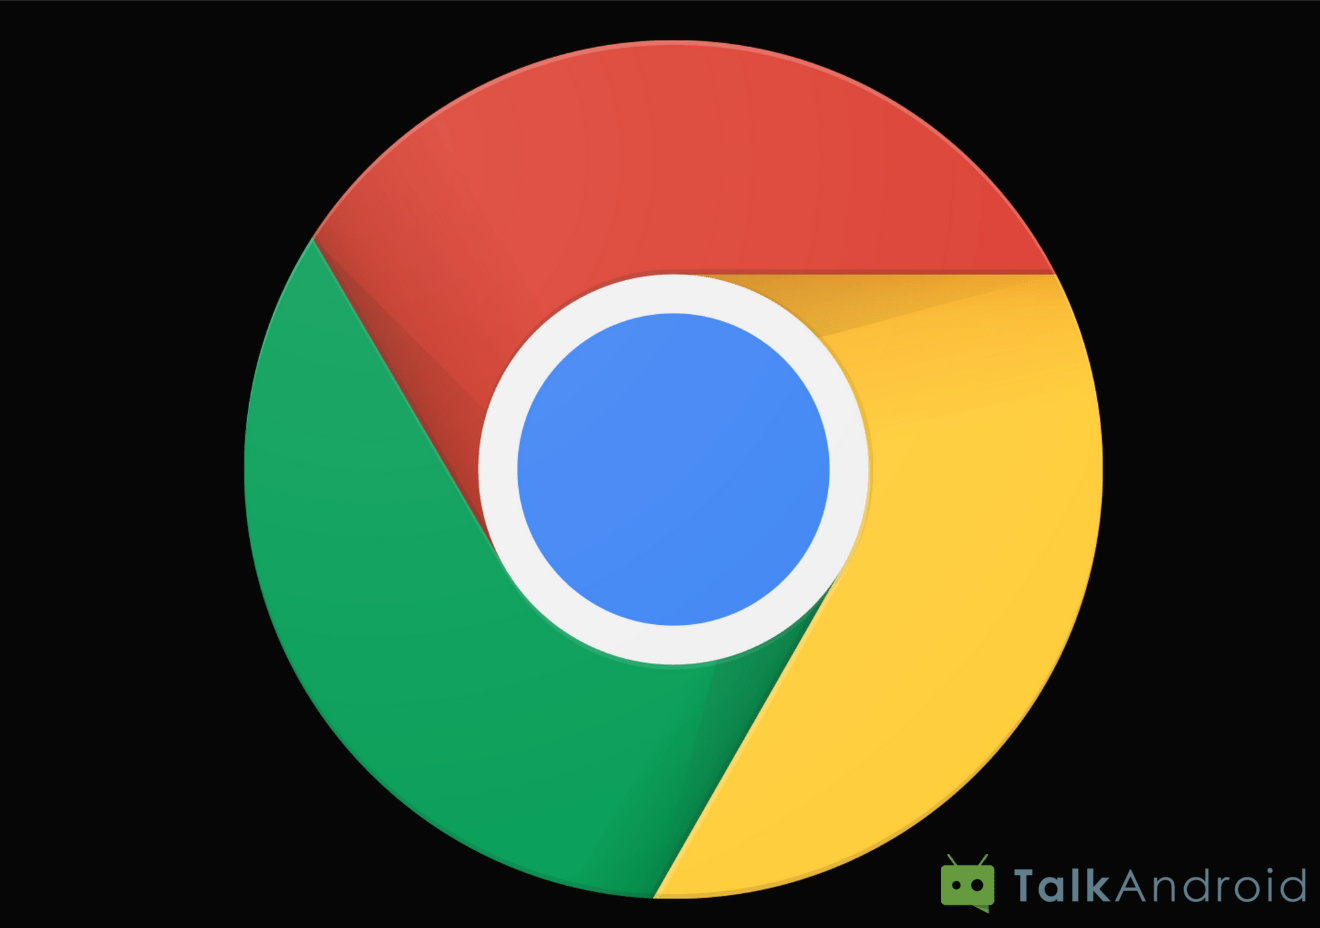 Chrome on Android is moving to 64-bit, boosting performance - TalkAndroid.com